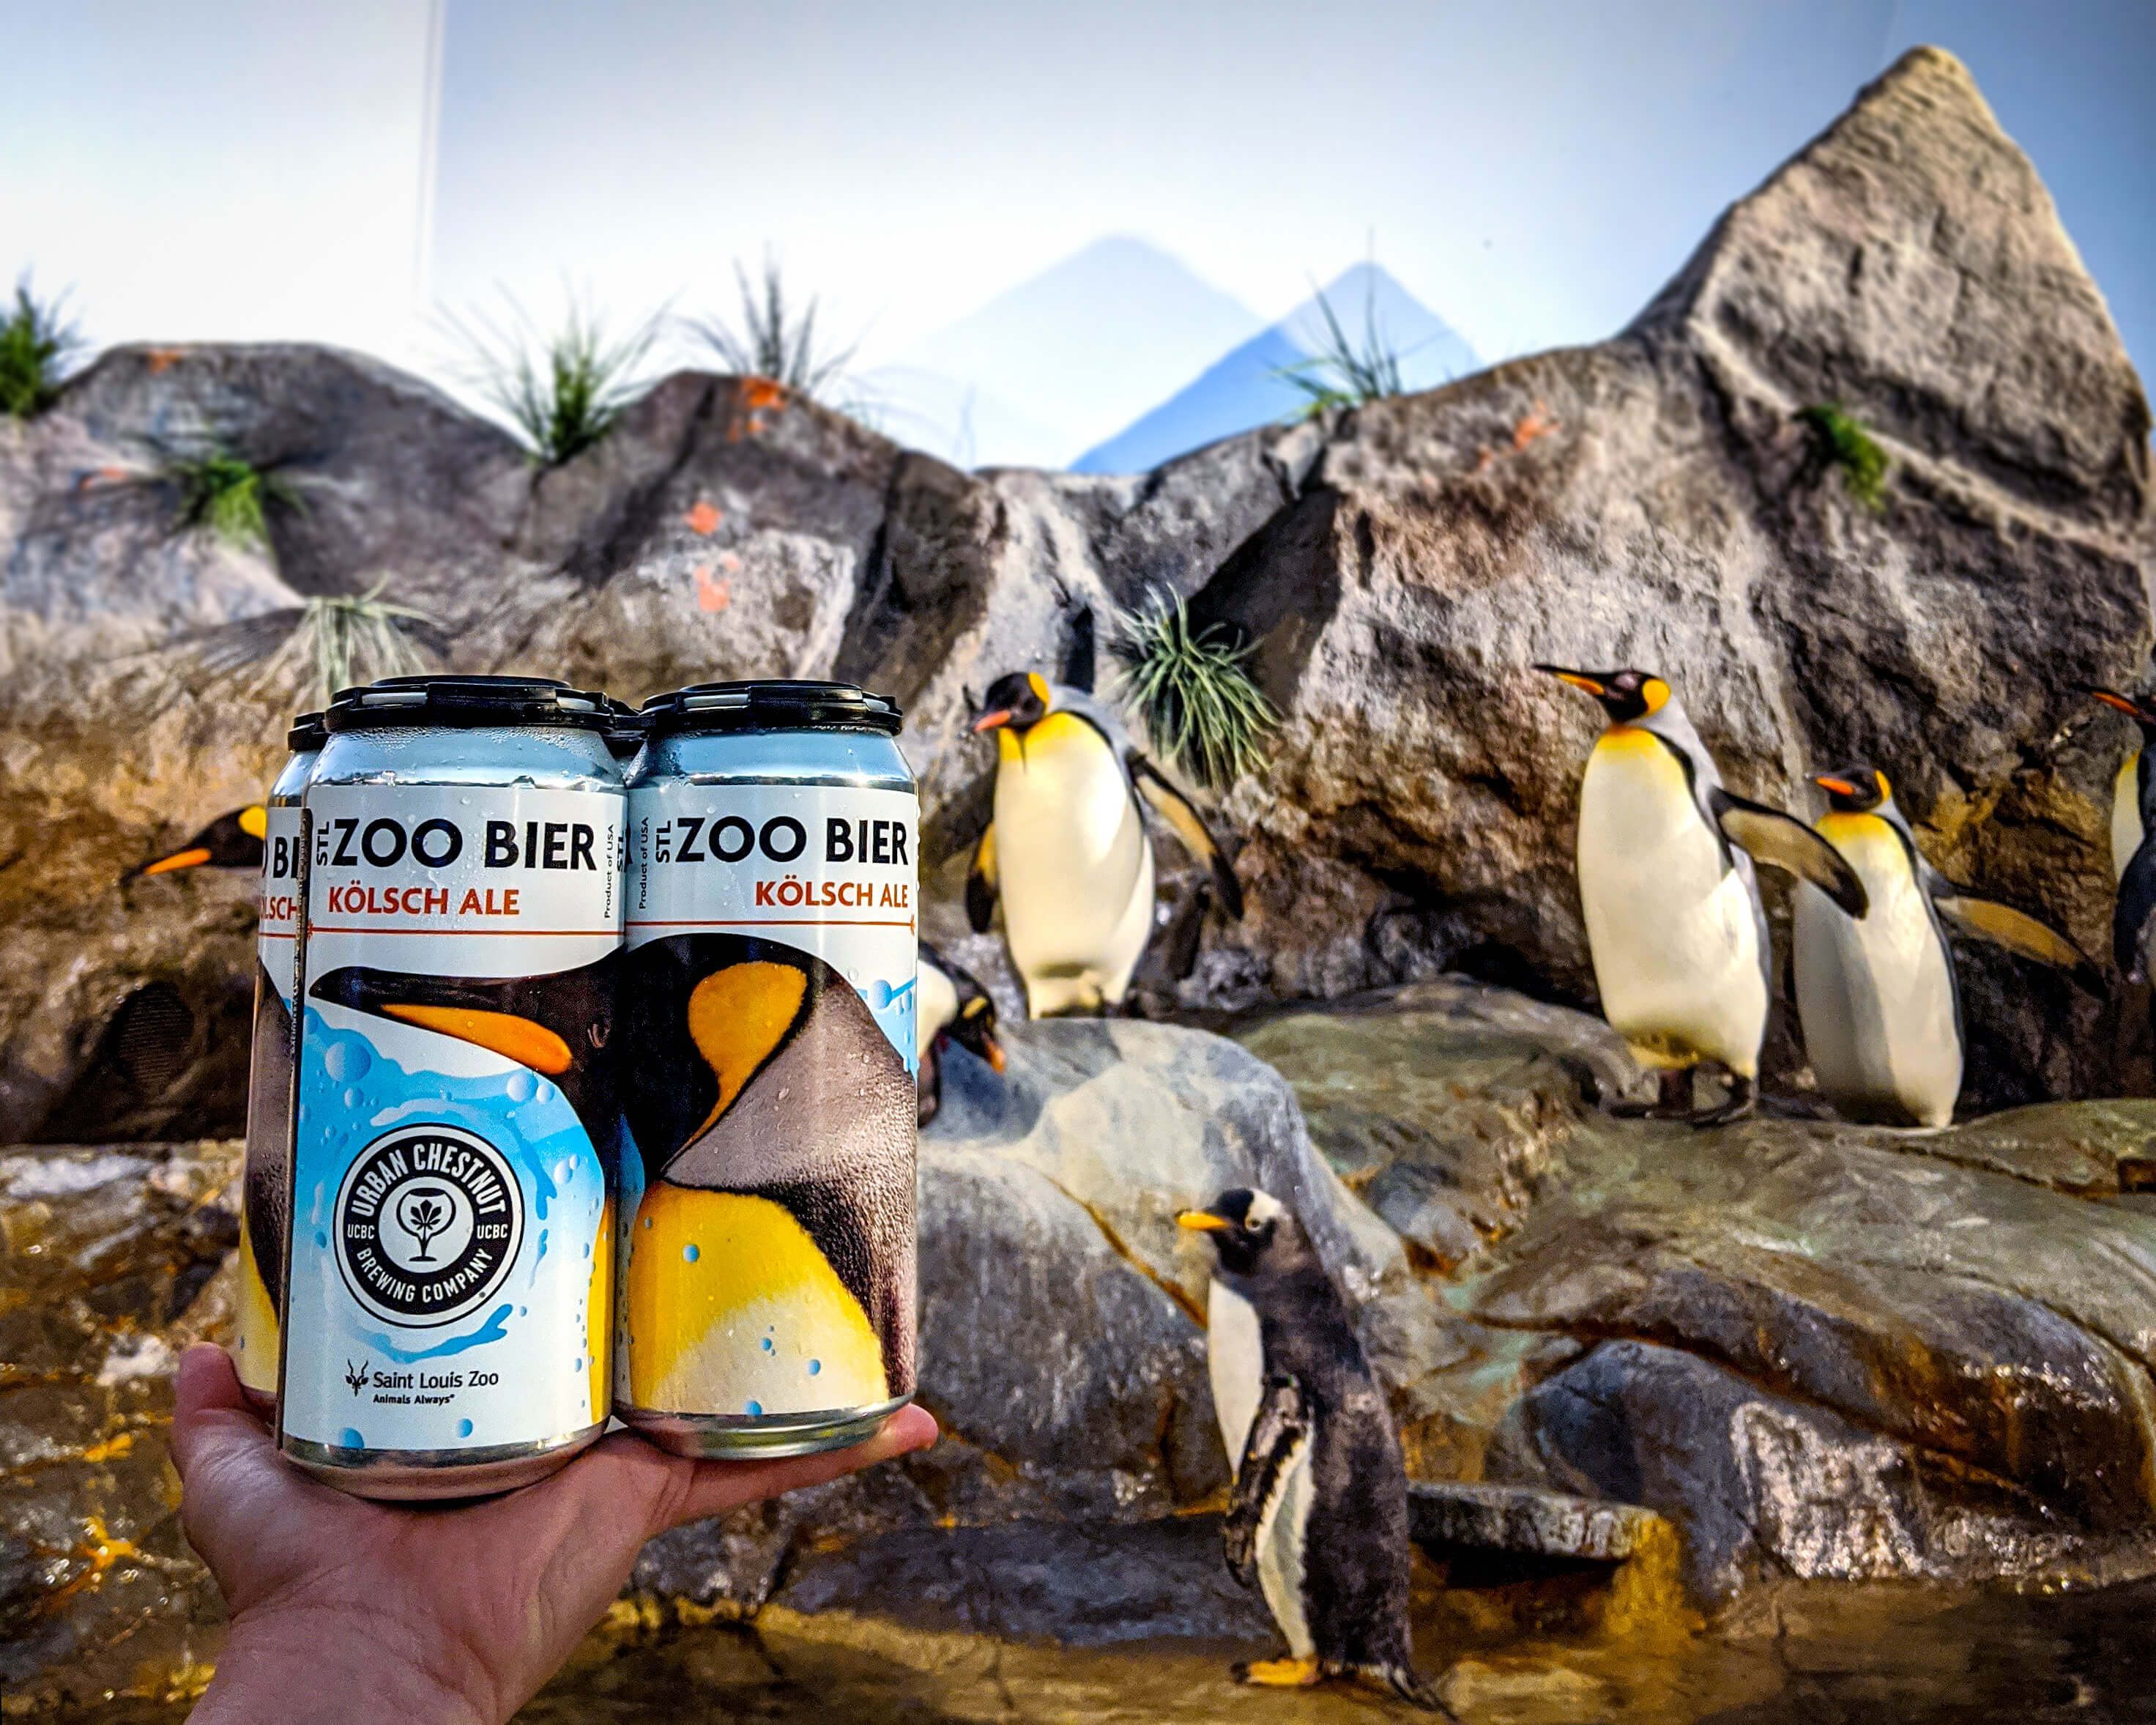 STL Zoo Bier raises funds and awareness for the Saint Louis Zoo's animal care and conservation work